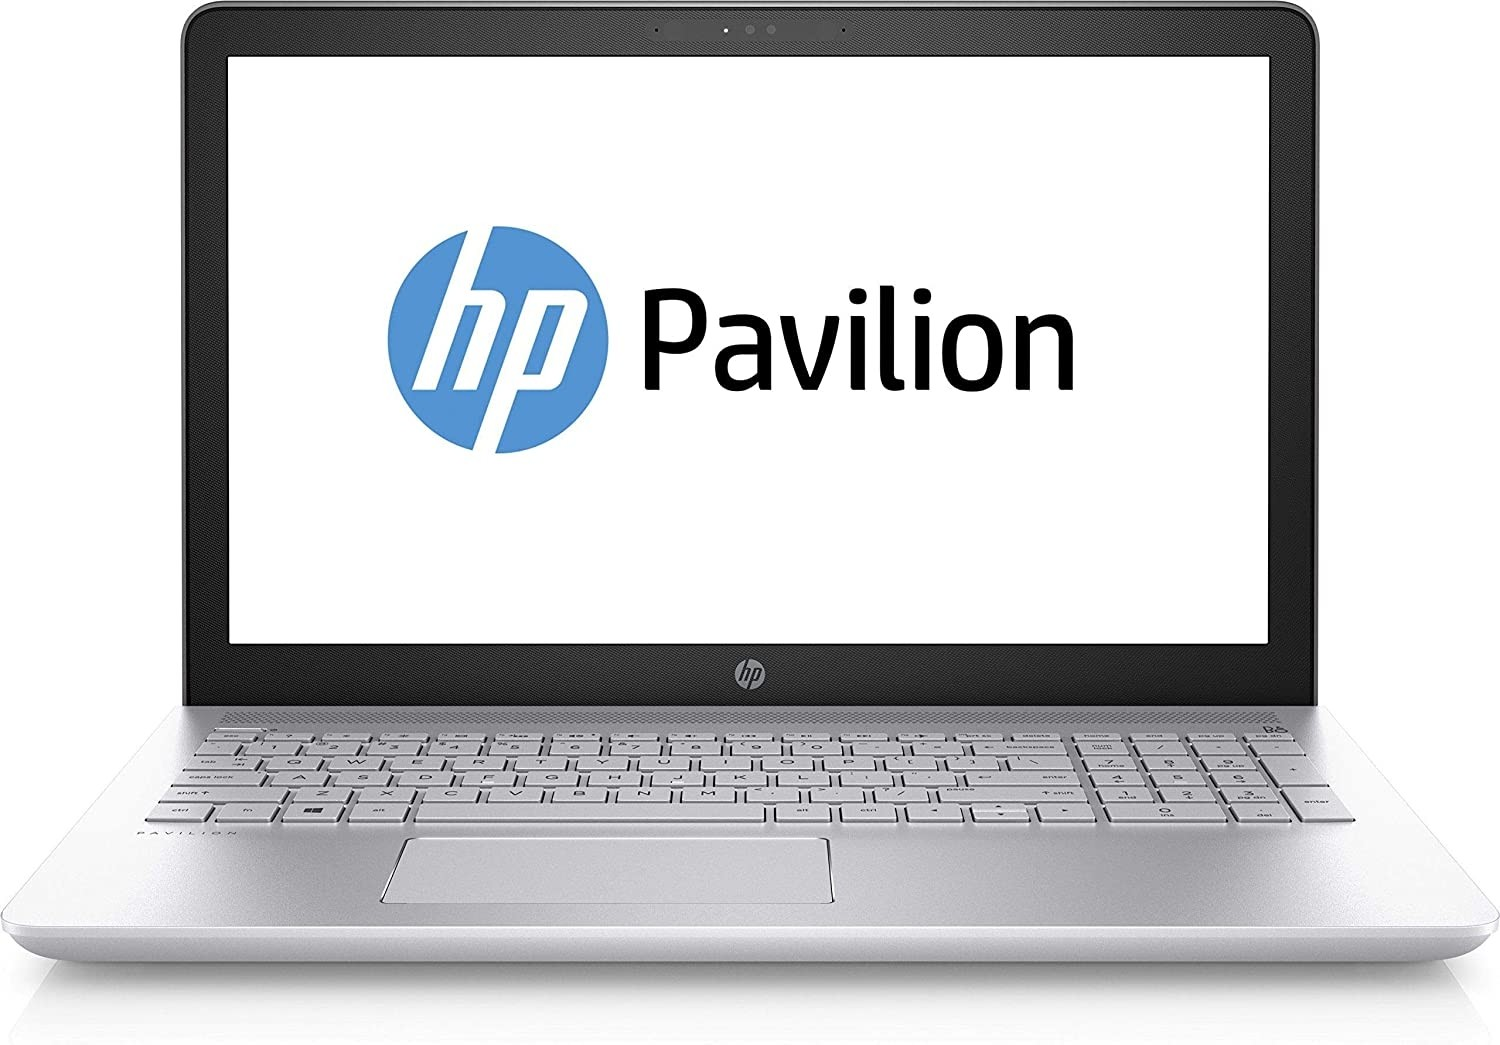 Refurbished laptops & desktops - HP PAVILION INTEL CORE I5 8TH GEN 15.6-INCH FHD THIN AND LIGHT LAPTOP (8GB/1TB HDD/WIN 10 HOME/2GB GRAPHICS/SILVER/2.02 KG), CC129TX